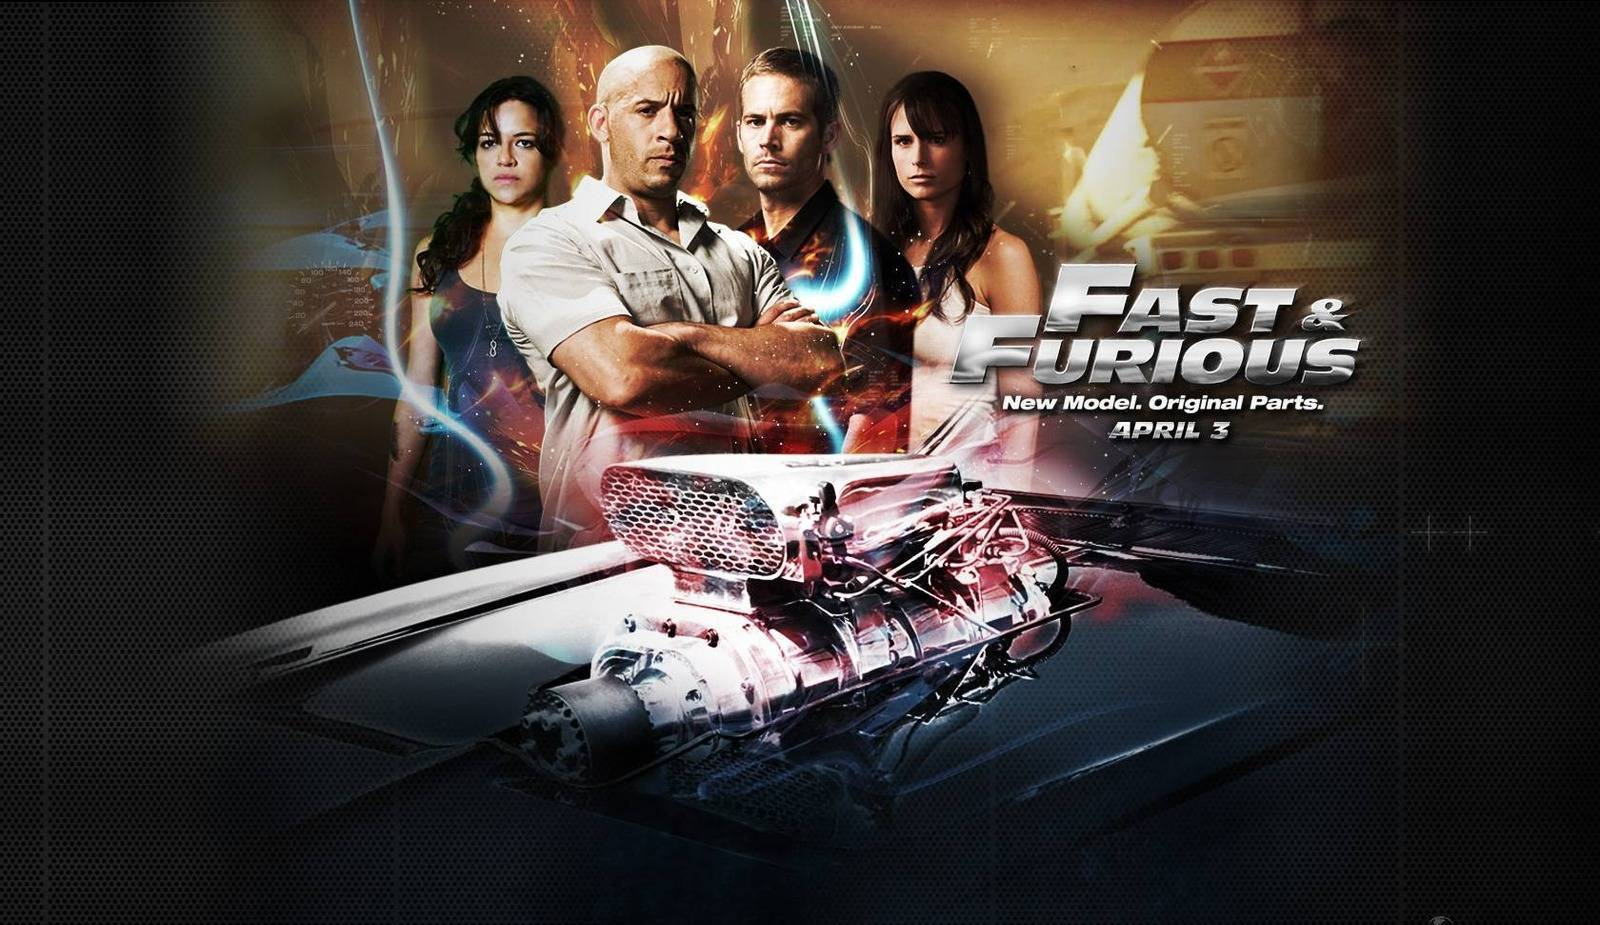 Pic Famina: Fast Furious 6 Hd Wallpapers